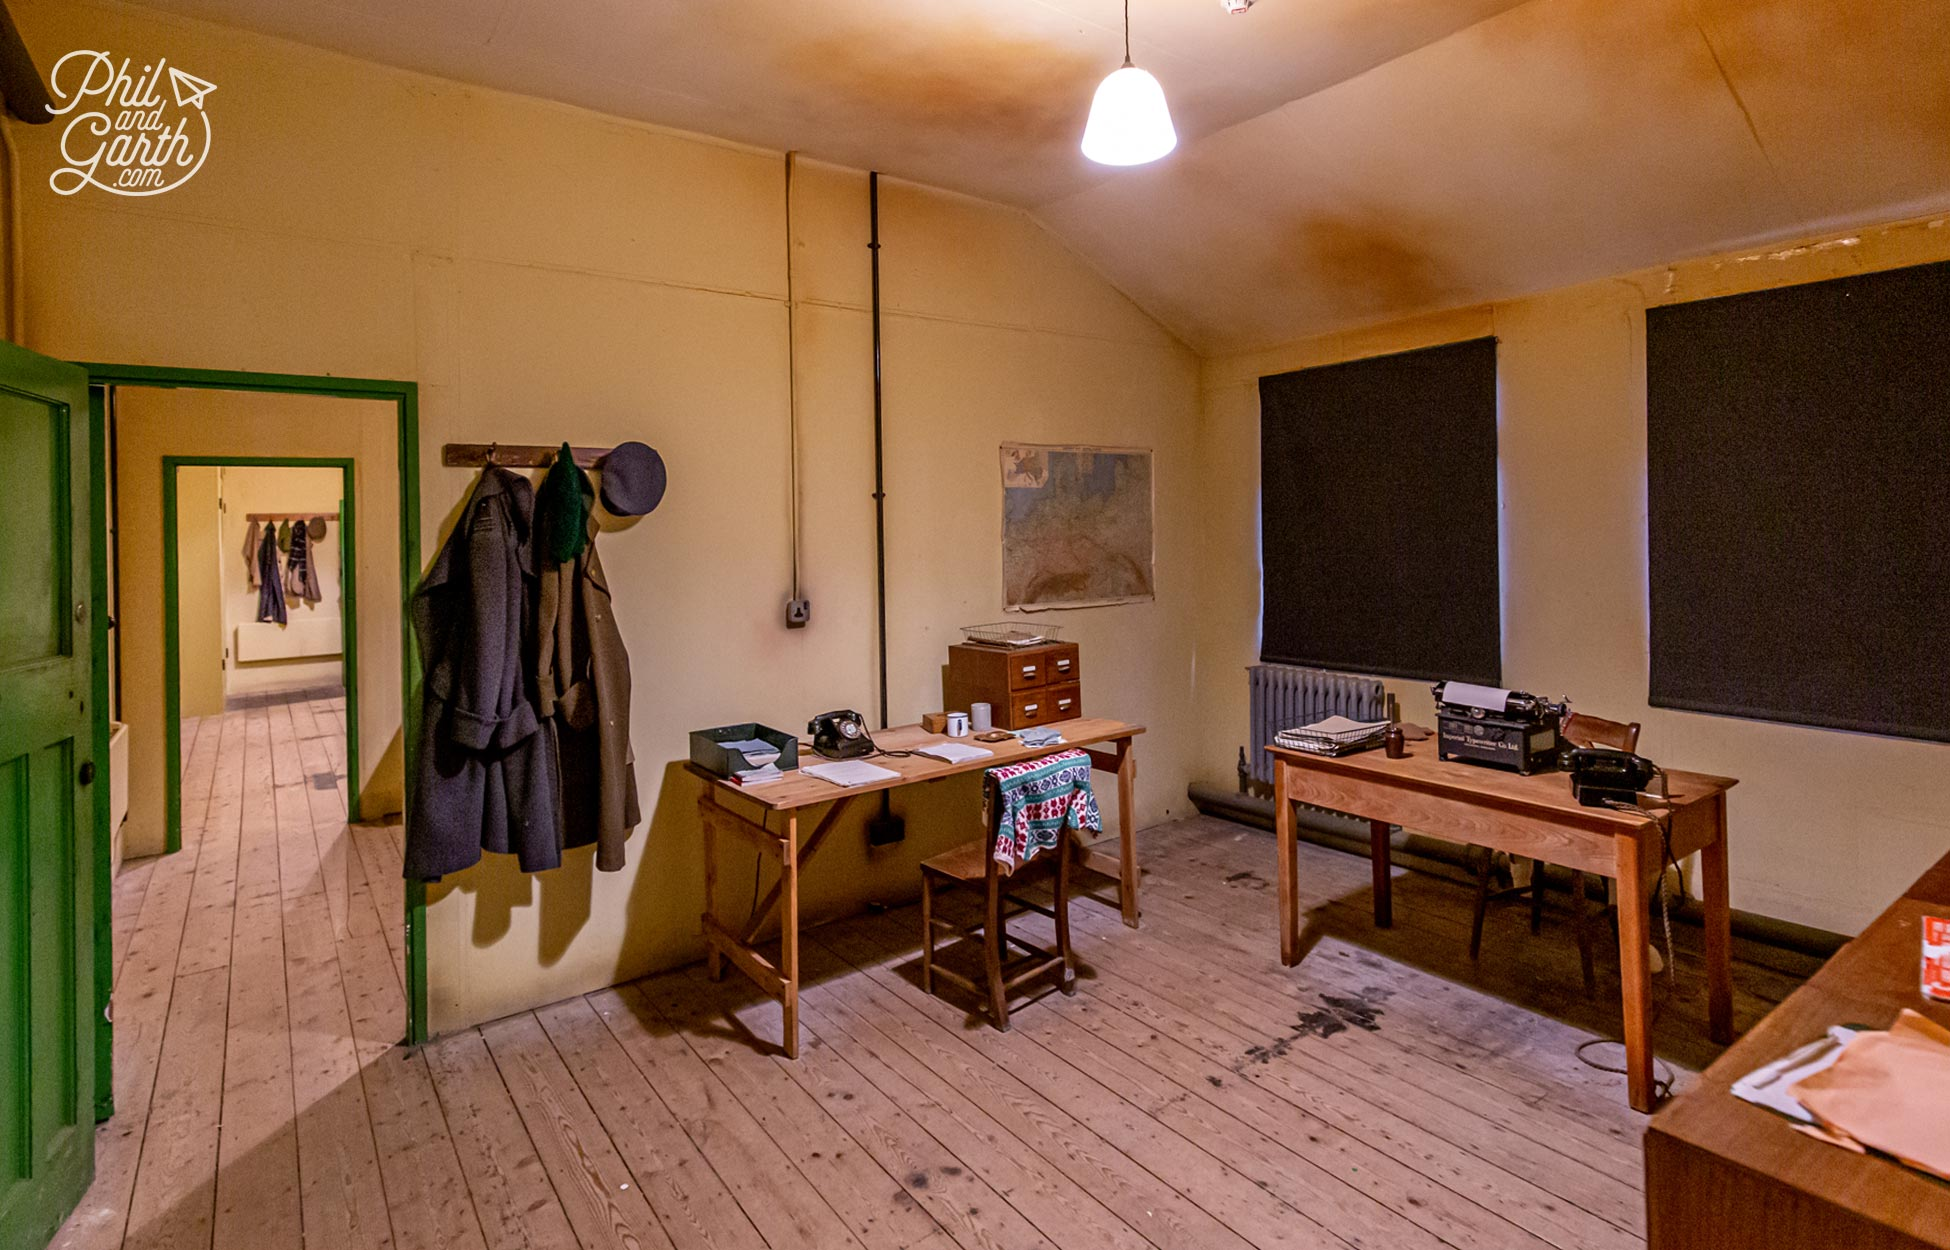 One of the rooms inside Hut 3